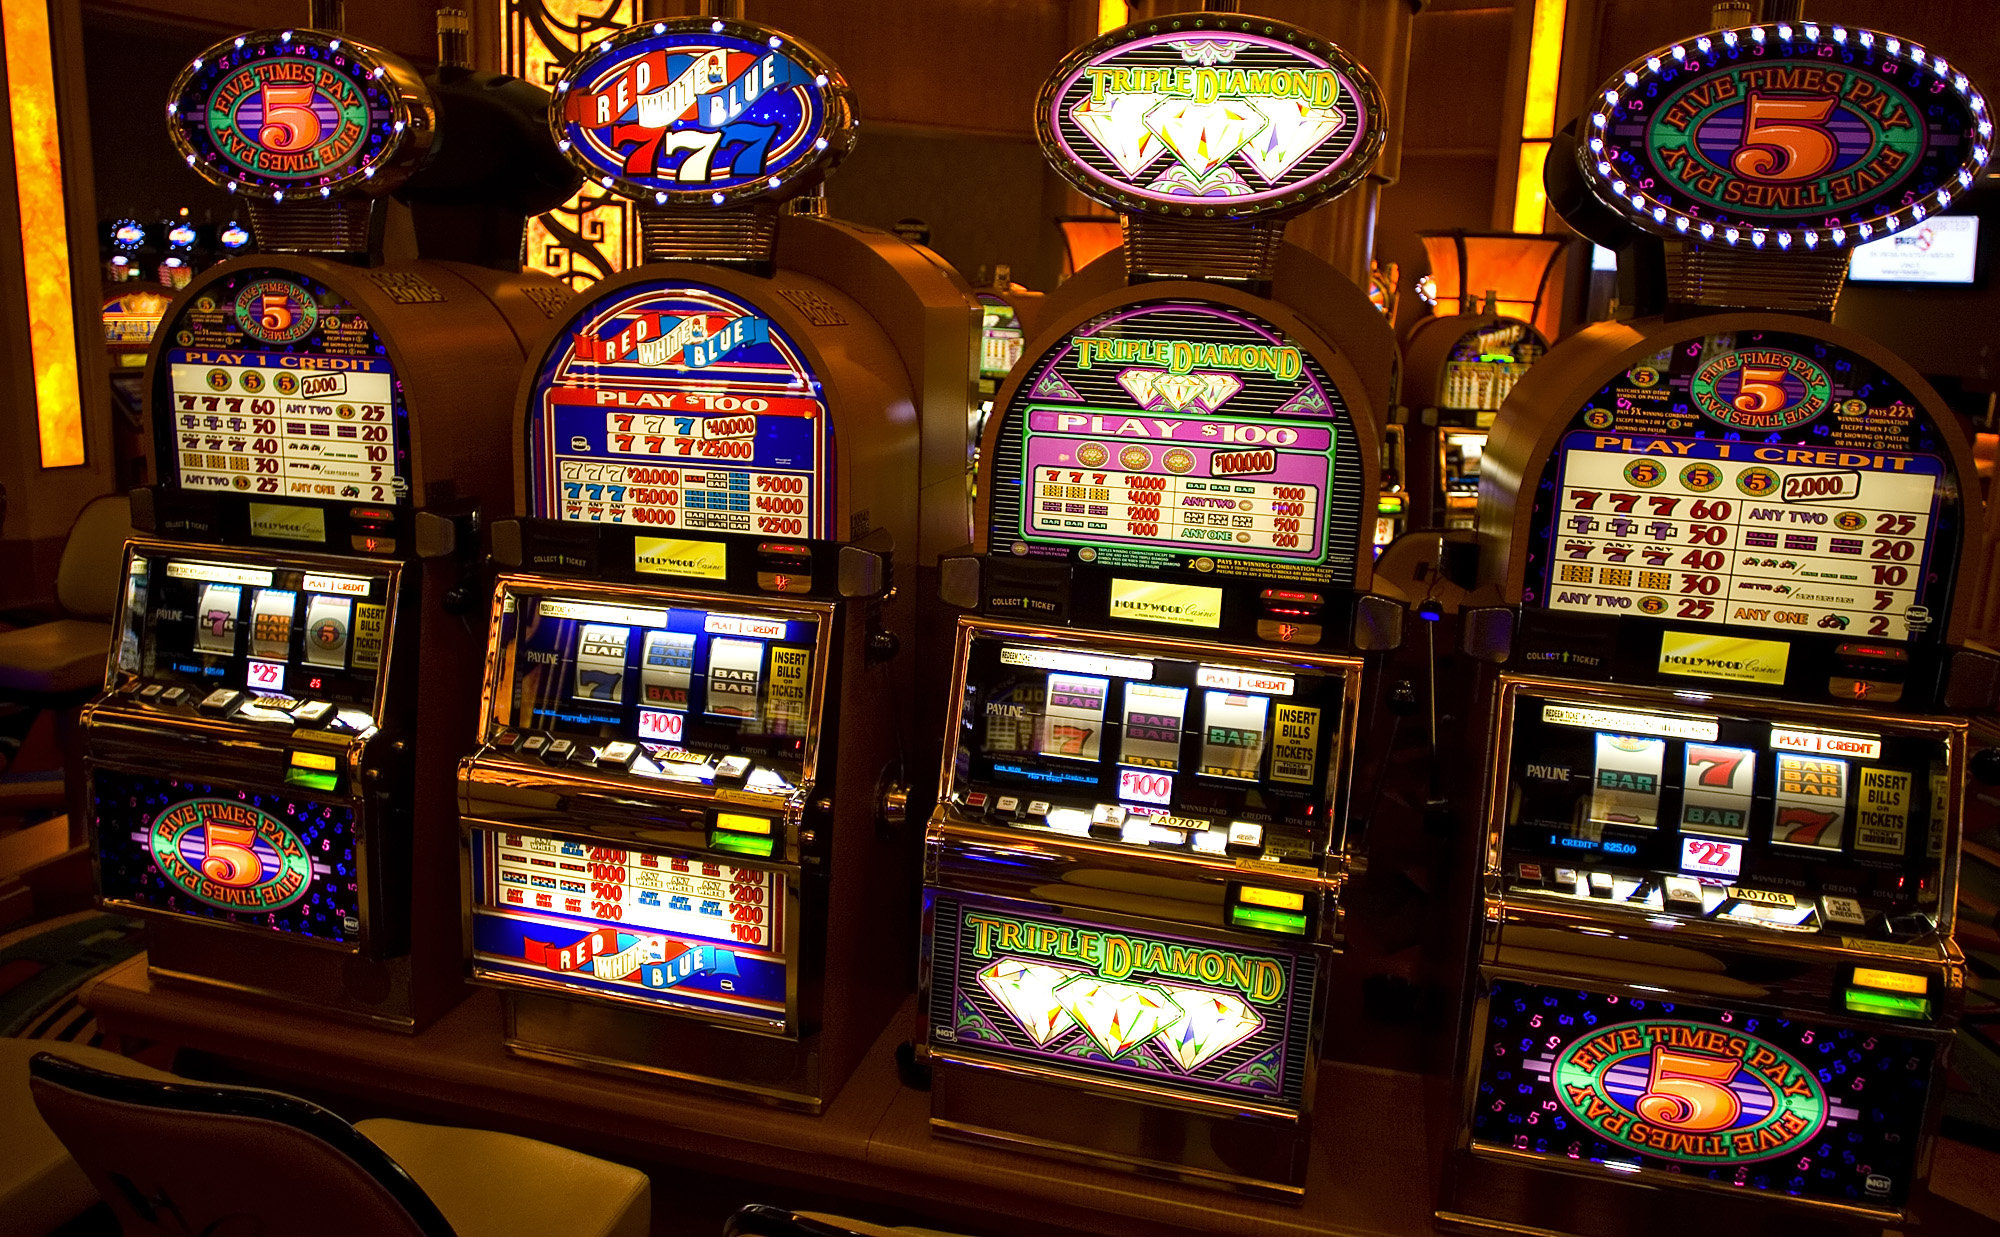 Casino News | 7/12 | All the action from the casino floor: news, views and more